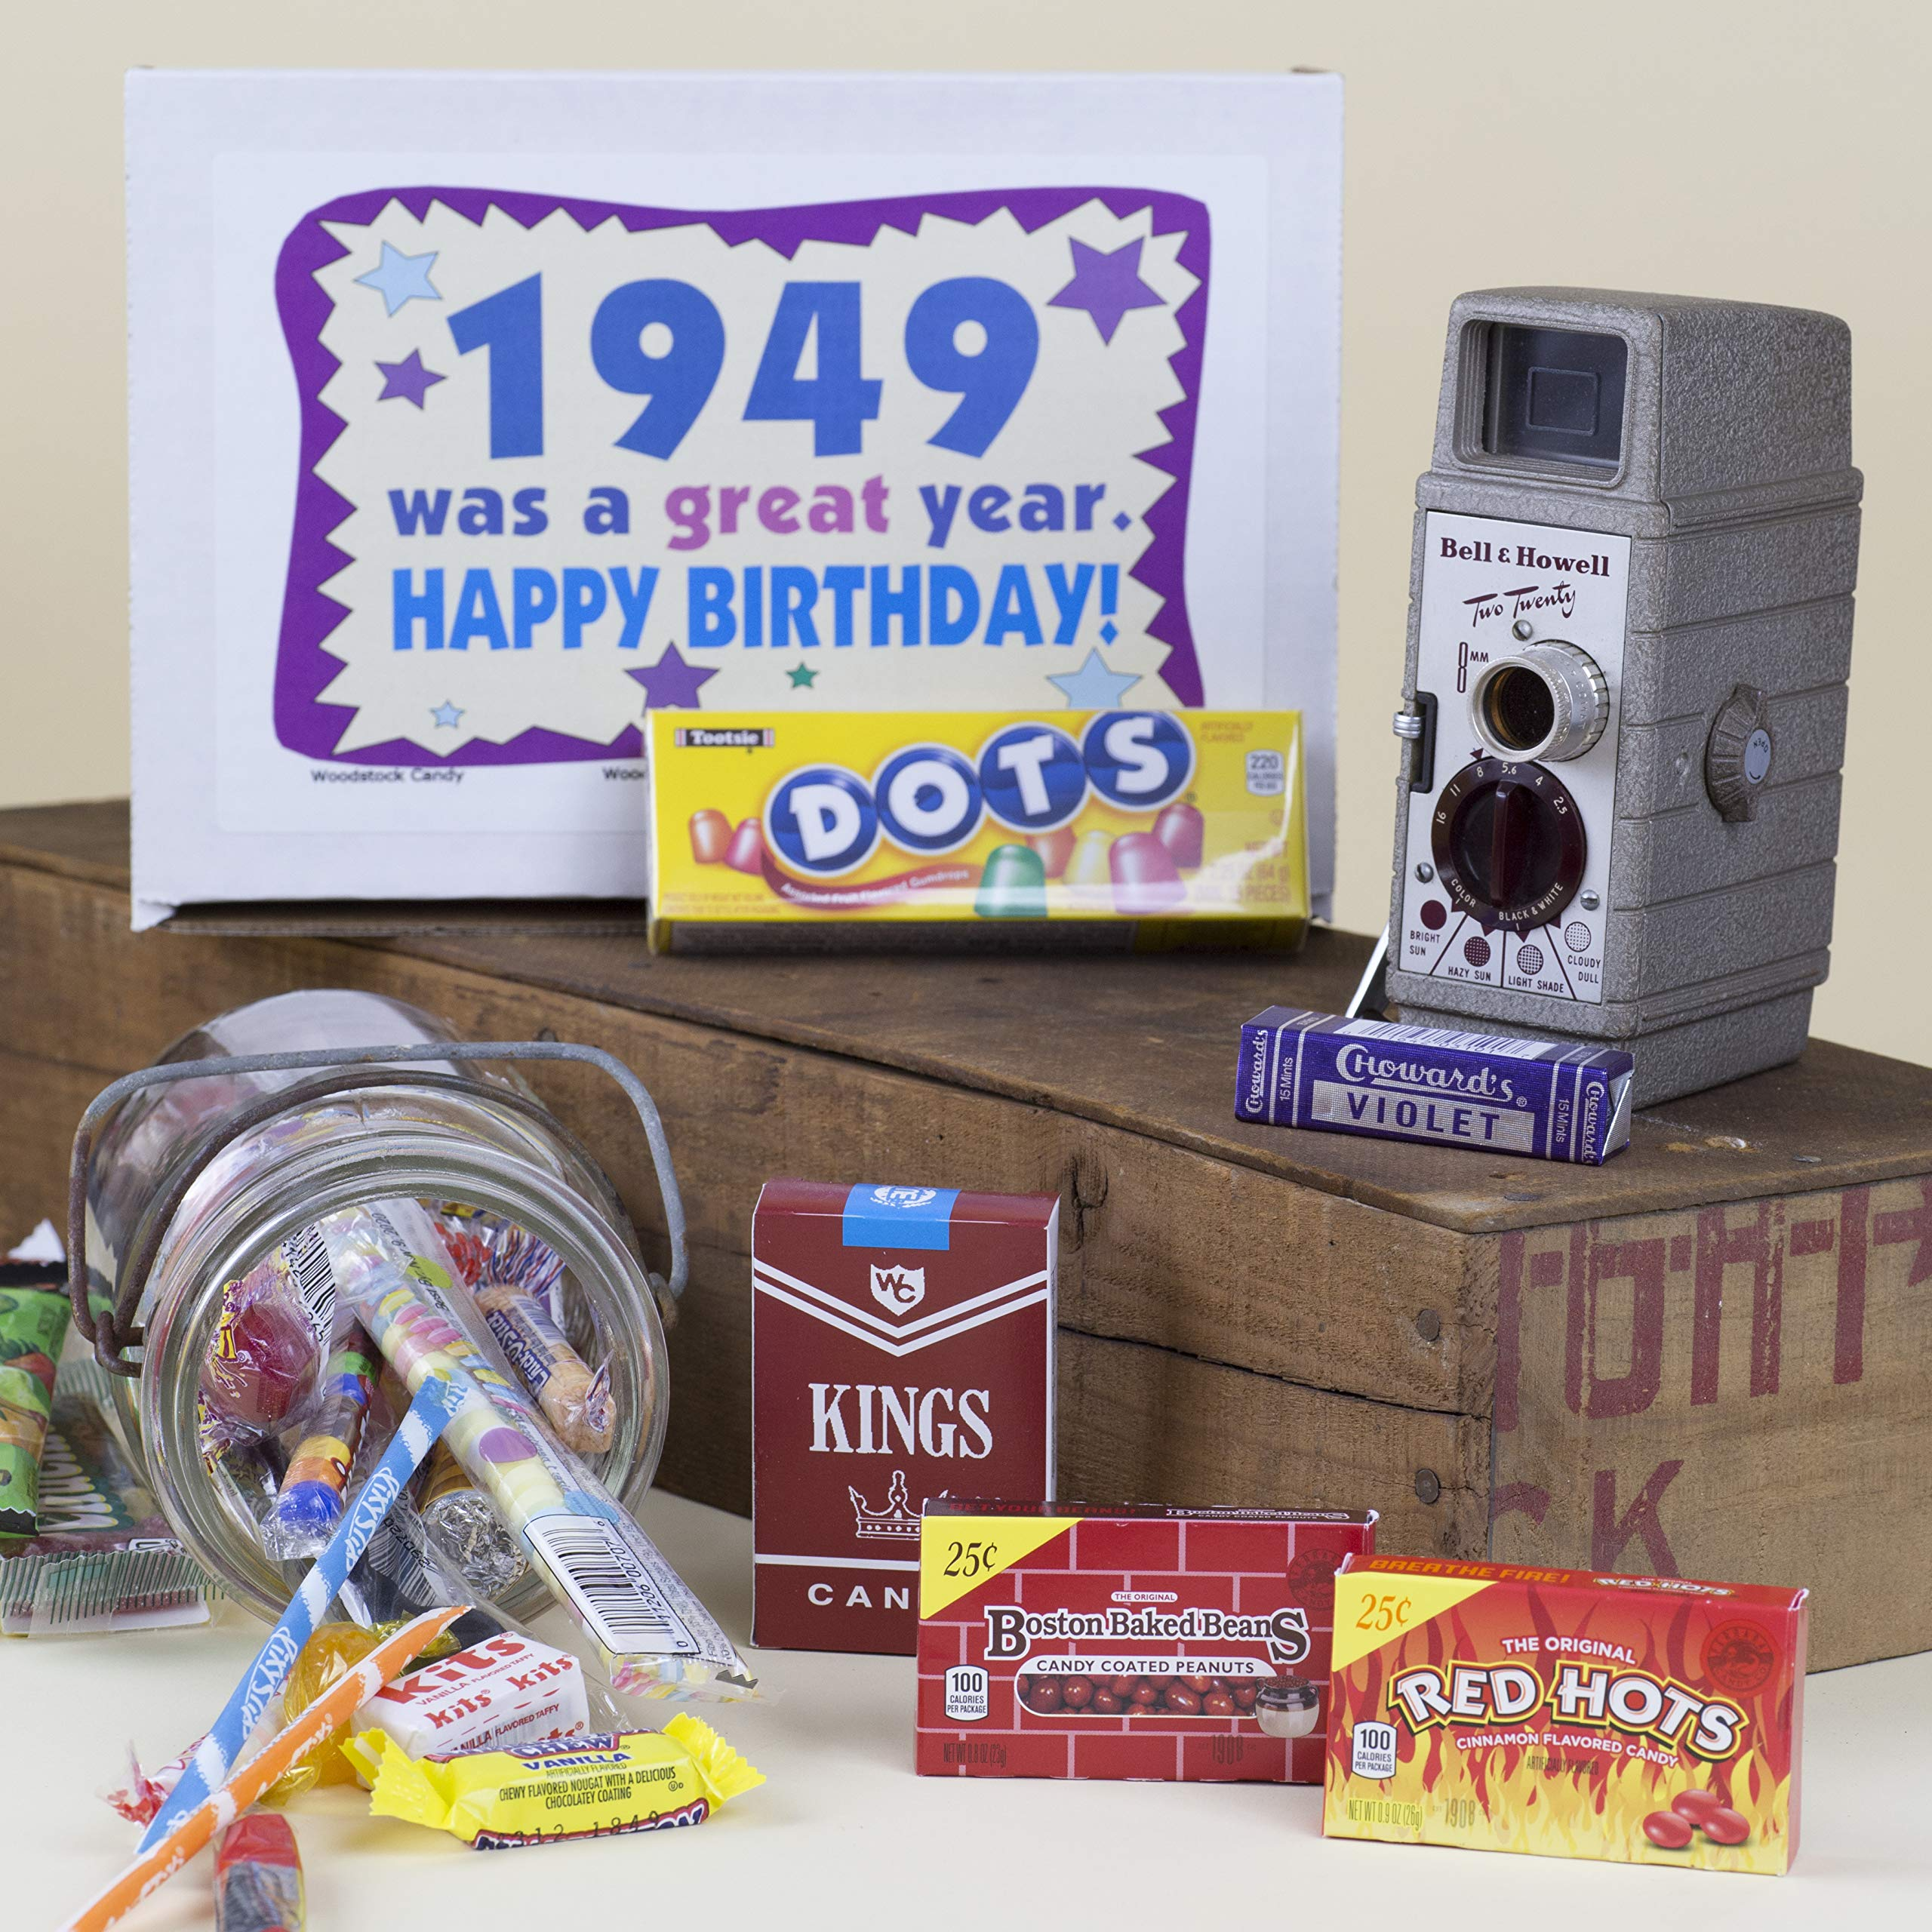 Woodstock Candy ~ 70th Birthday Gift Box of Retro Vintage Candy Assortment from Childhood for 70 Year Old Men and Women Born 1949 - Great Idea for Mom or Dad - Jr by Woodstock Candy (Image #3)